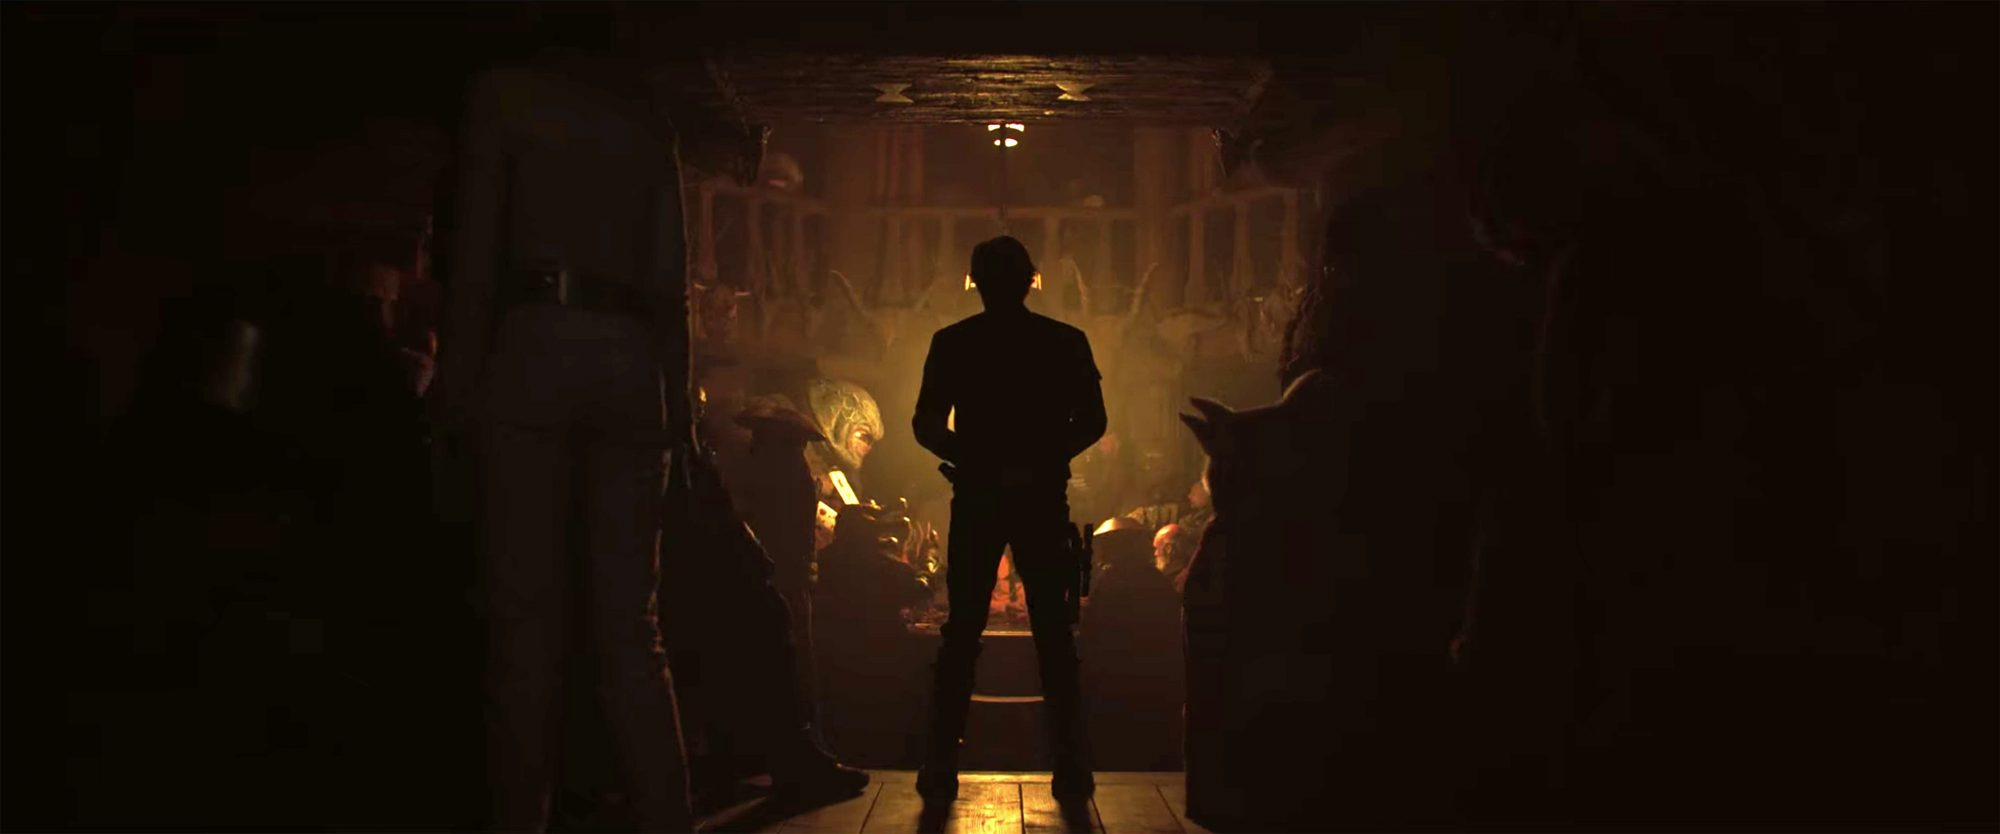 Solo A Star Wars Story trailer screen grabCR: Lucasfilm Ltd.